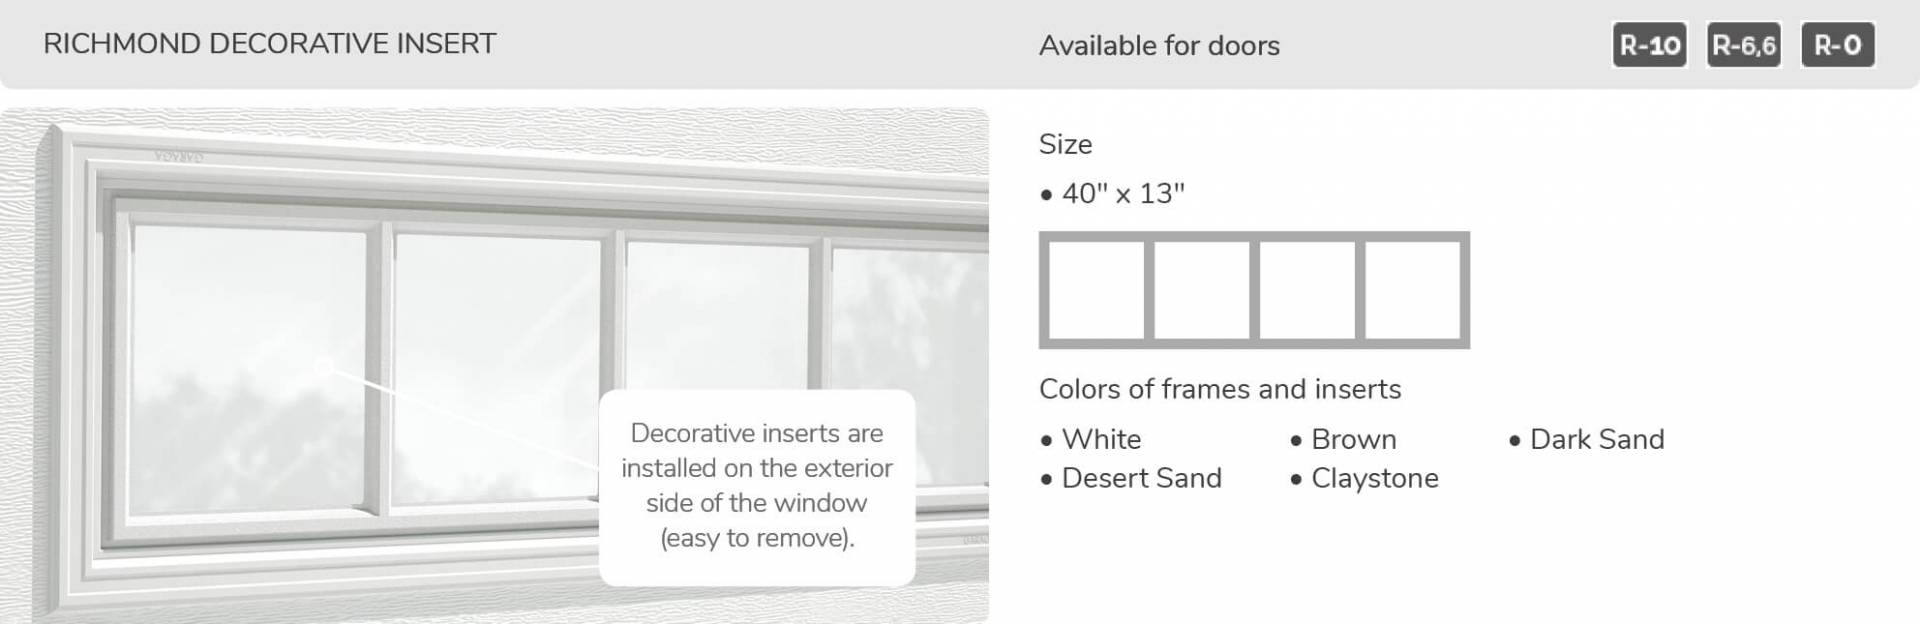 "Richmond Decorative Insert, 40"" x 13"", available for doors R-10, R-6.6, R-0"